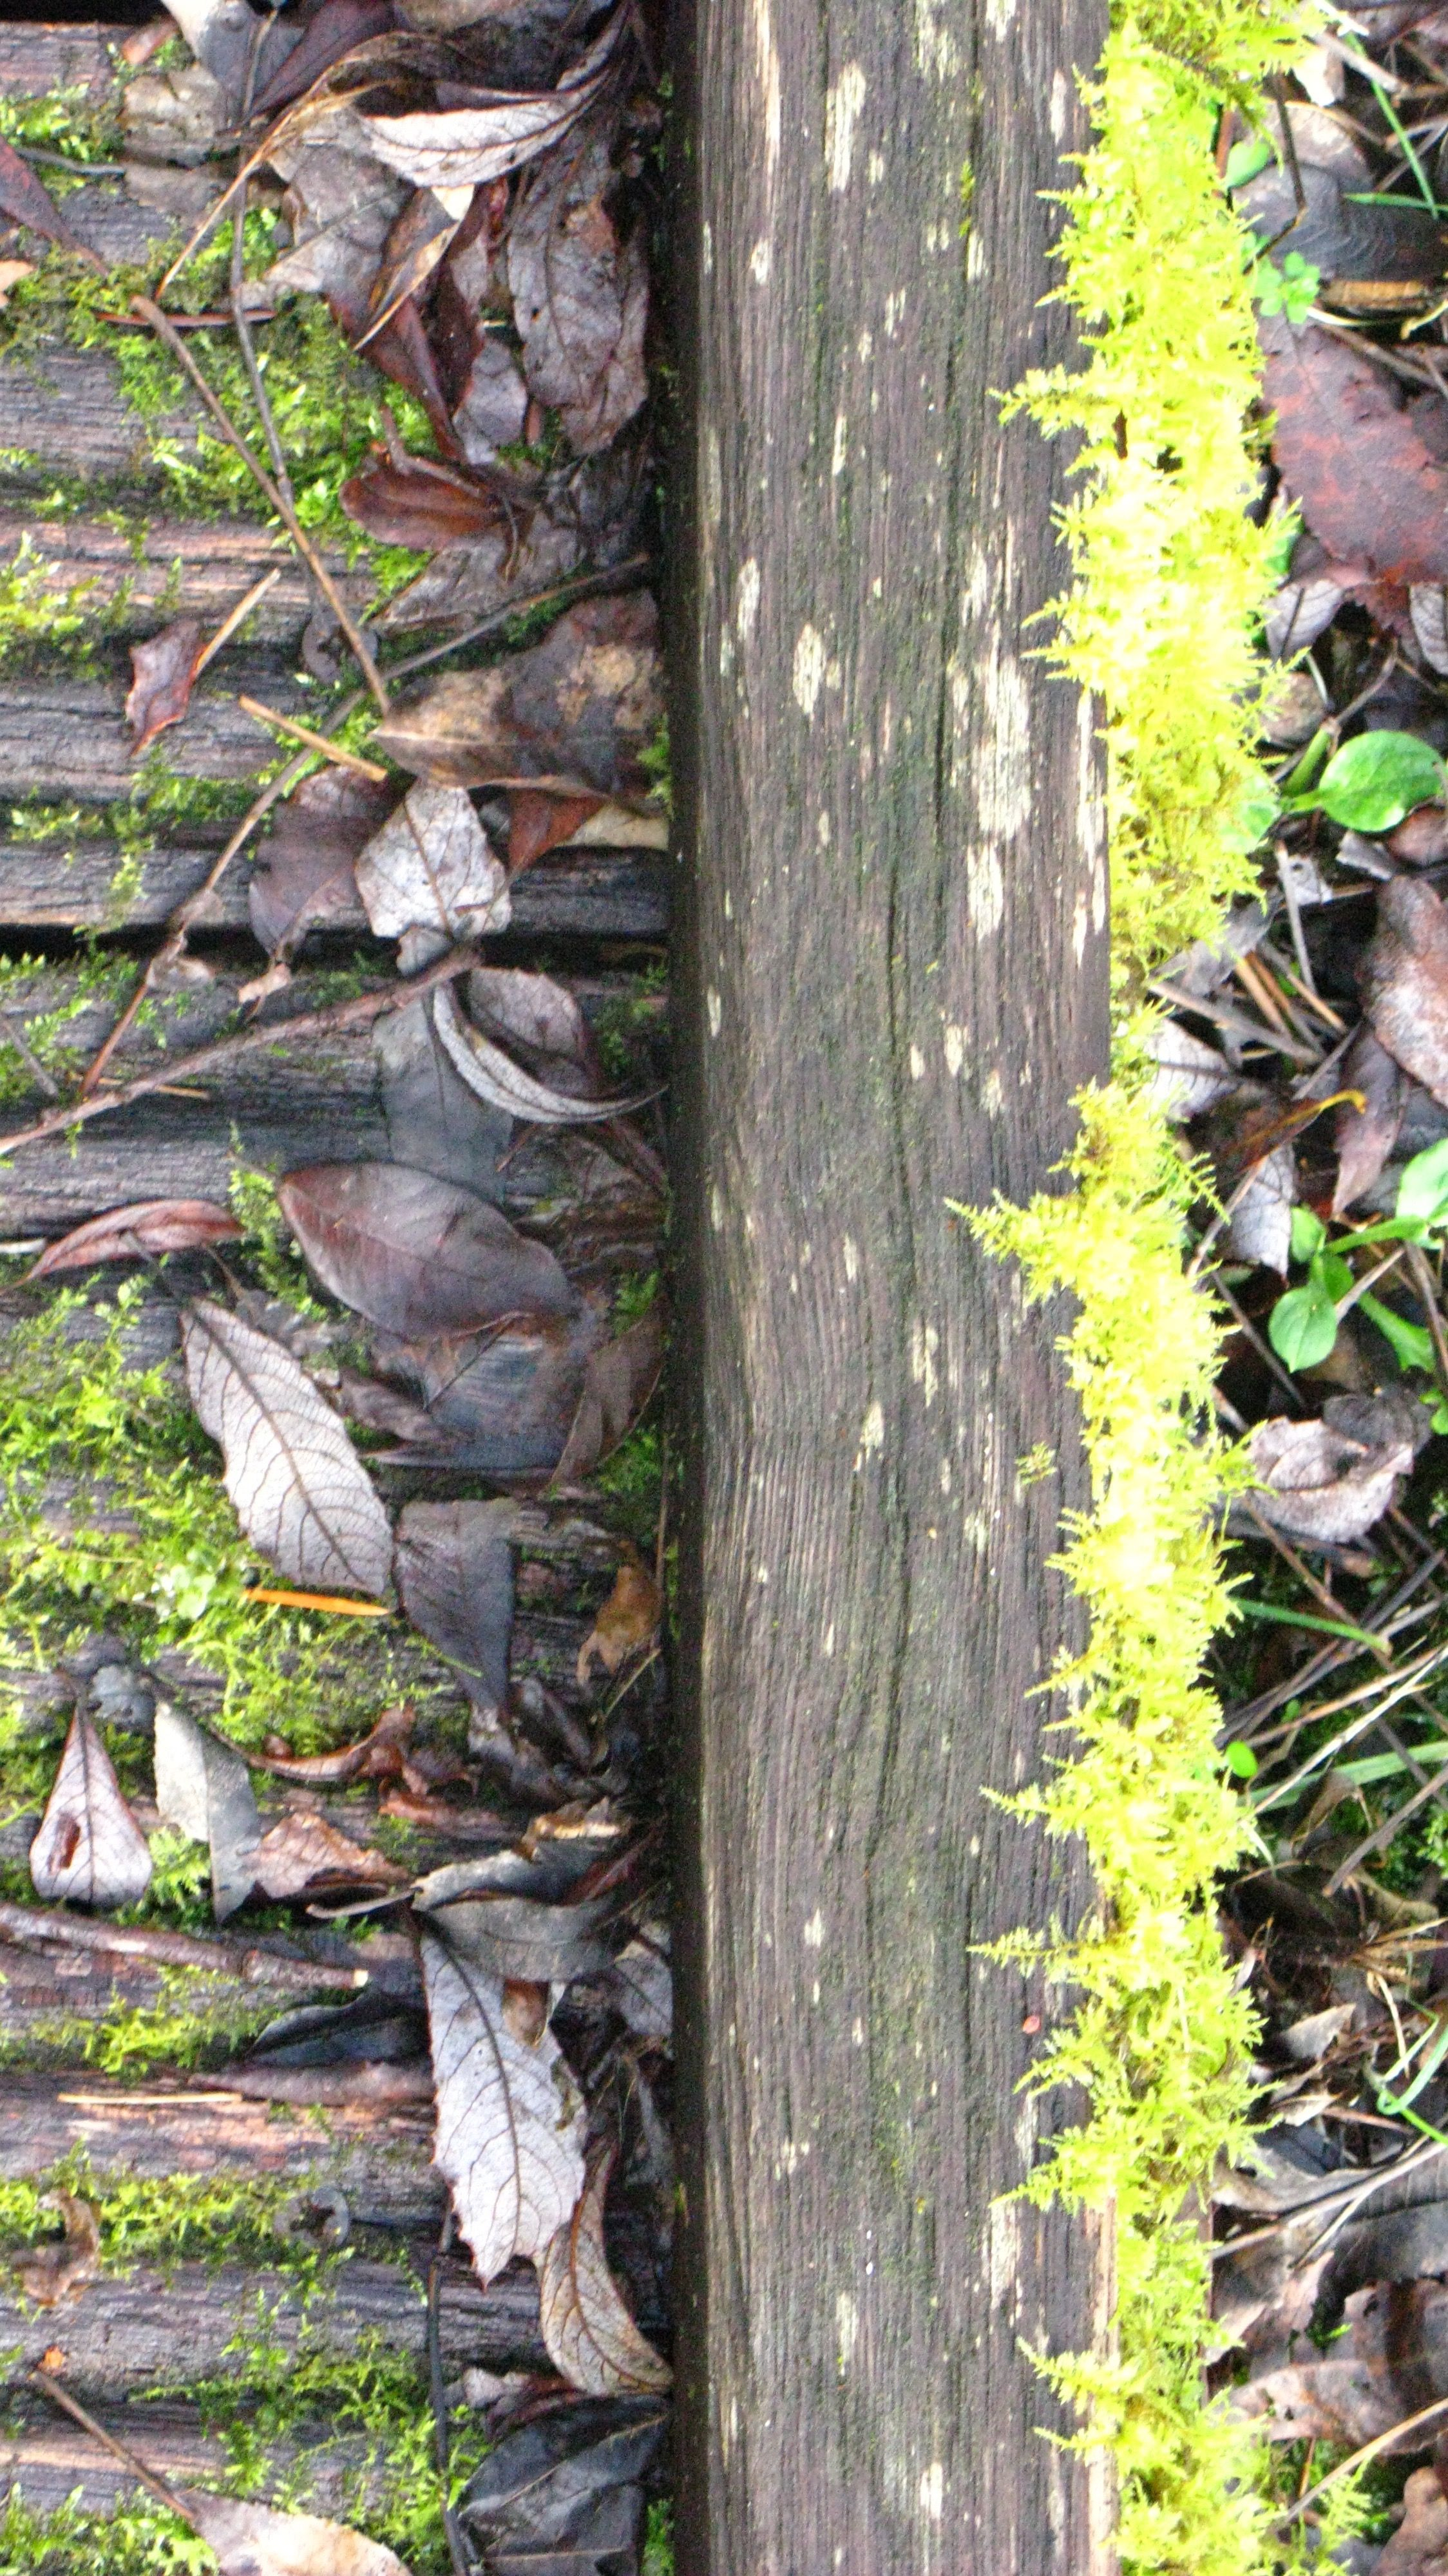 Mousse - Feuille - Bois - Herbe - Champi